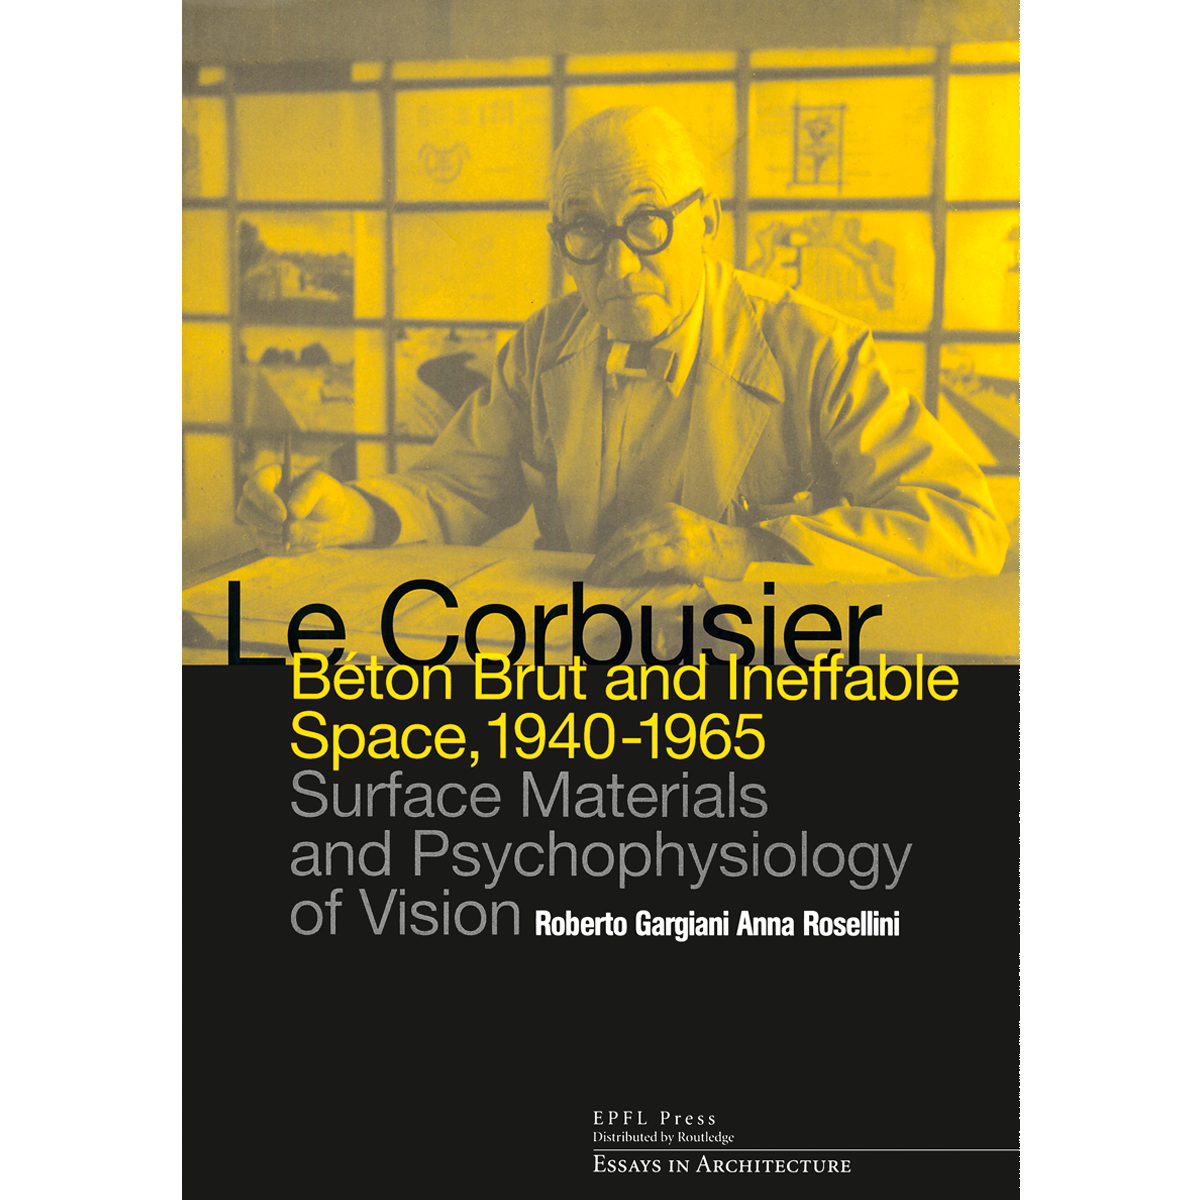 Le Corbusier: Béton Brut  and Ineffable Space, 1940-1965